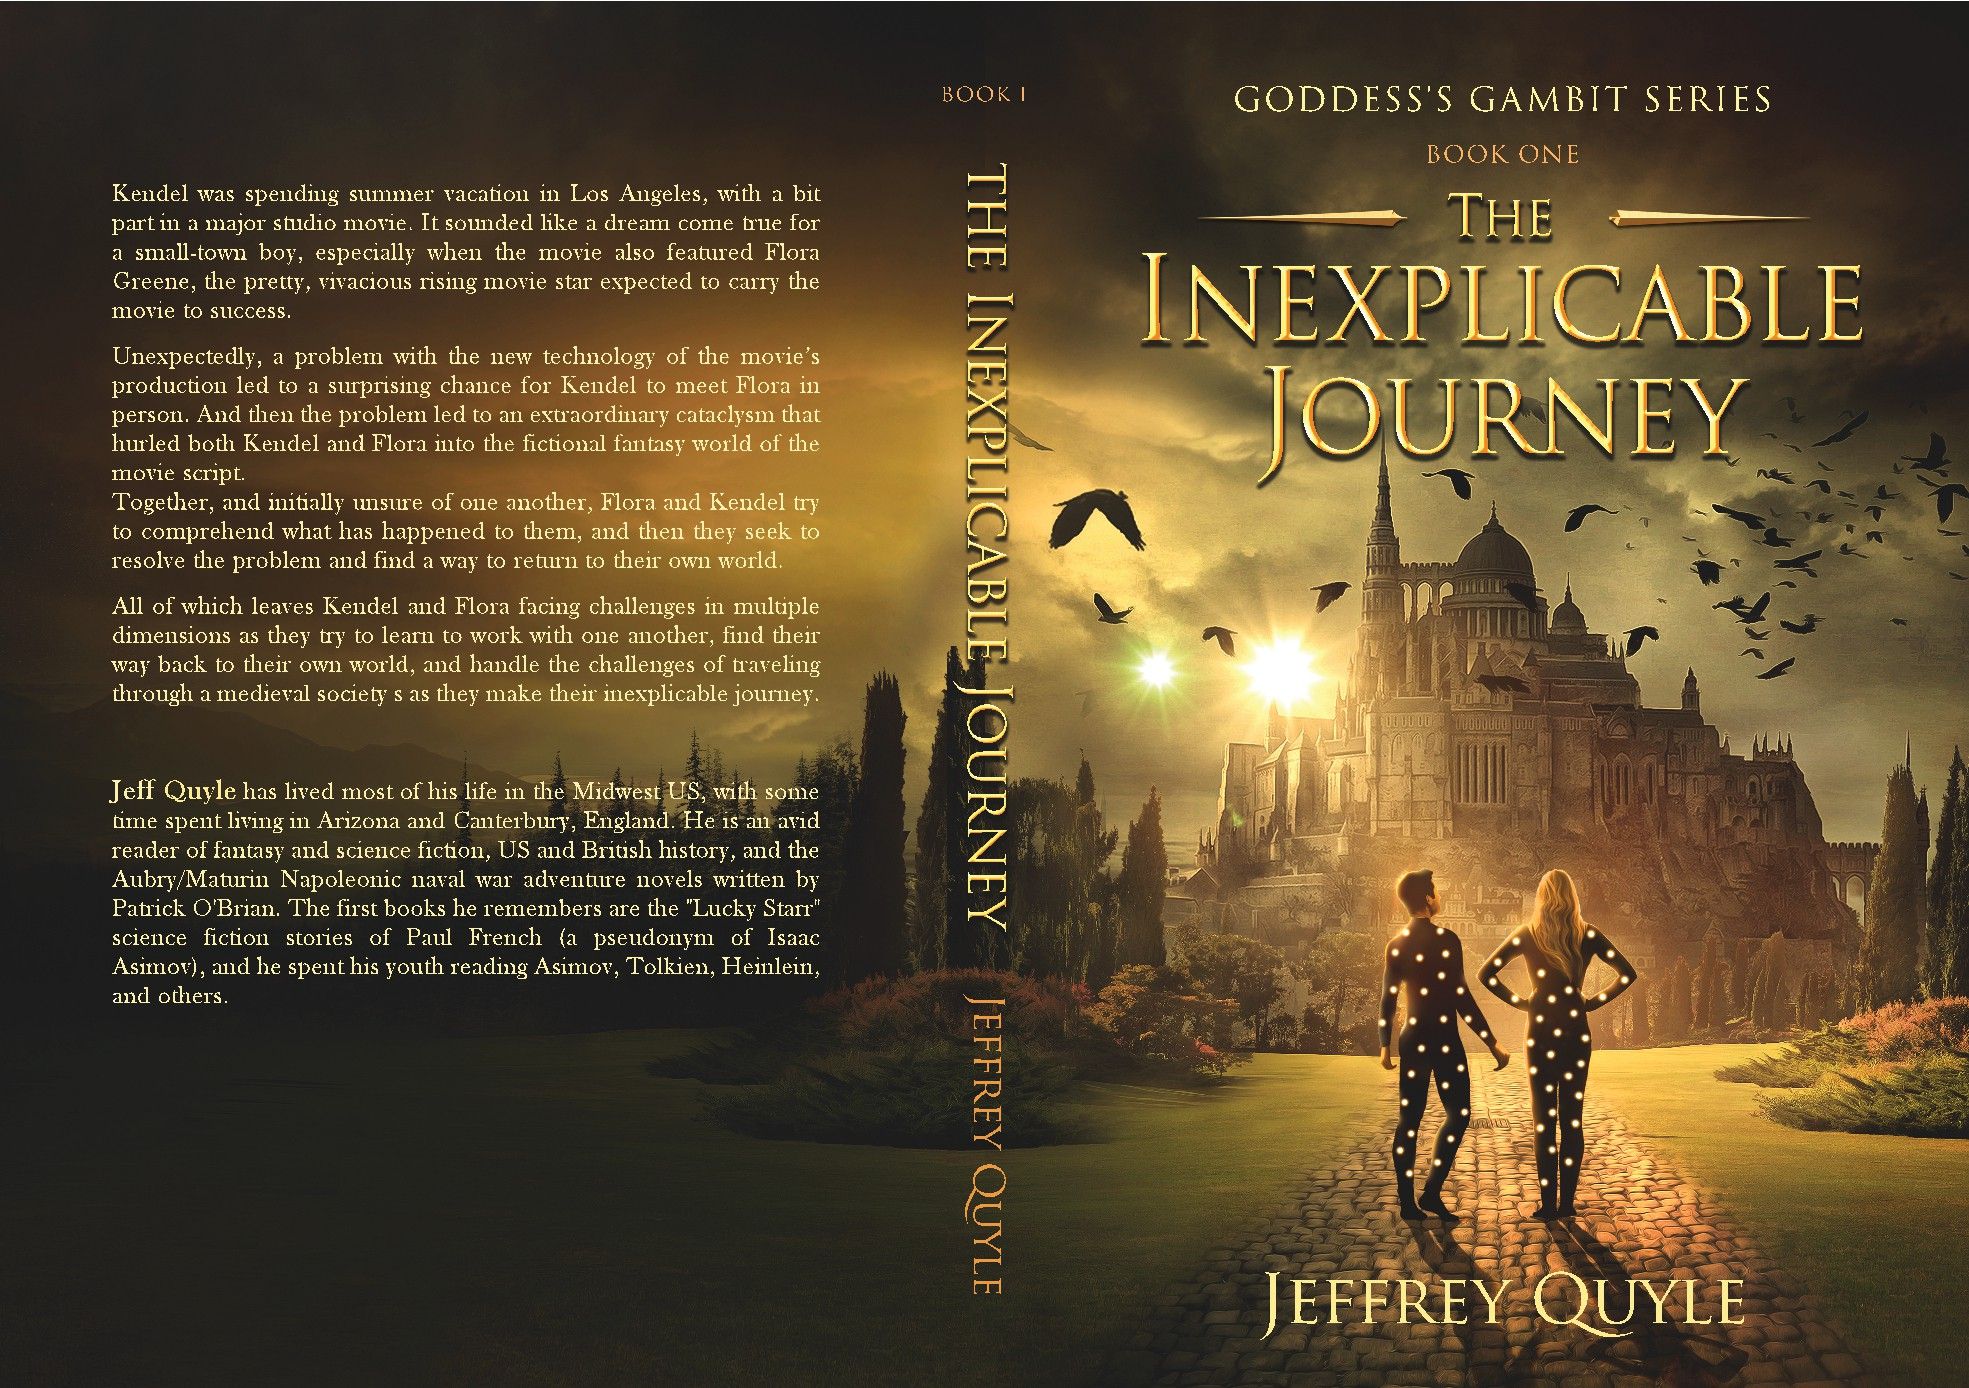 The Inexplicable Journey Cover Contest